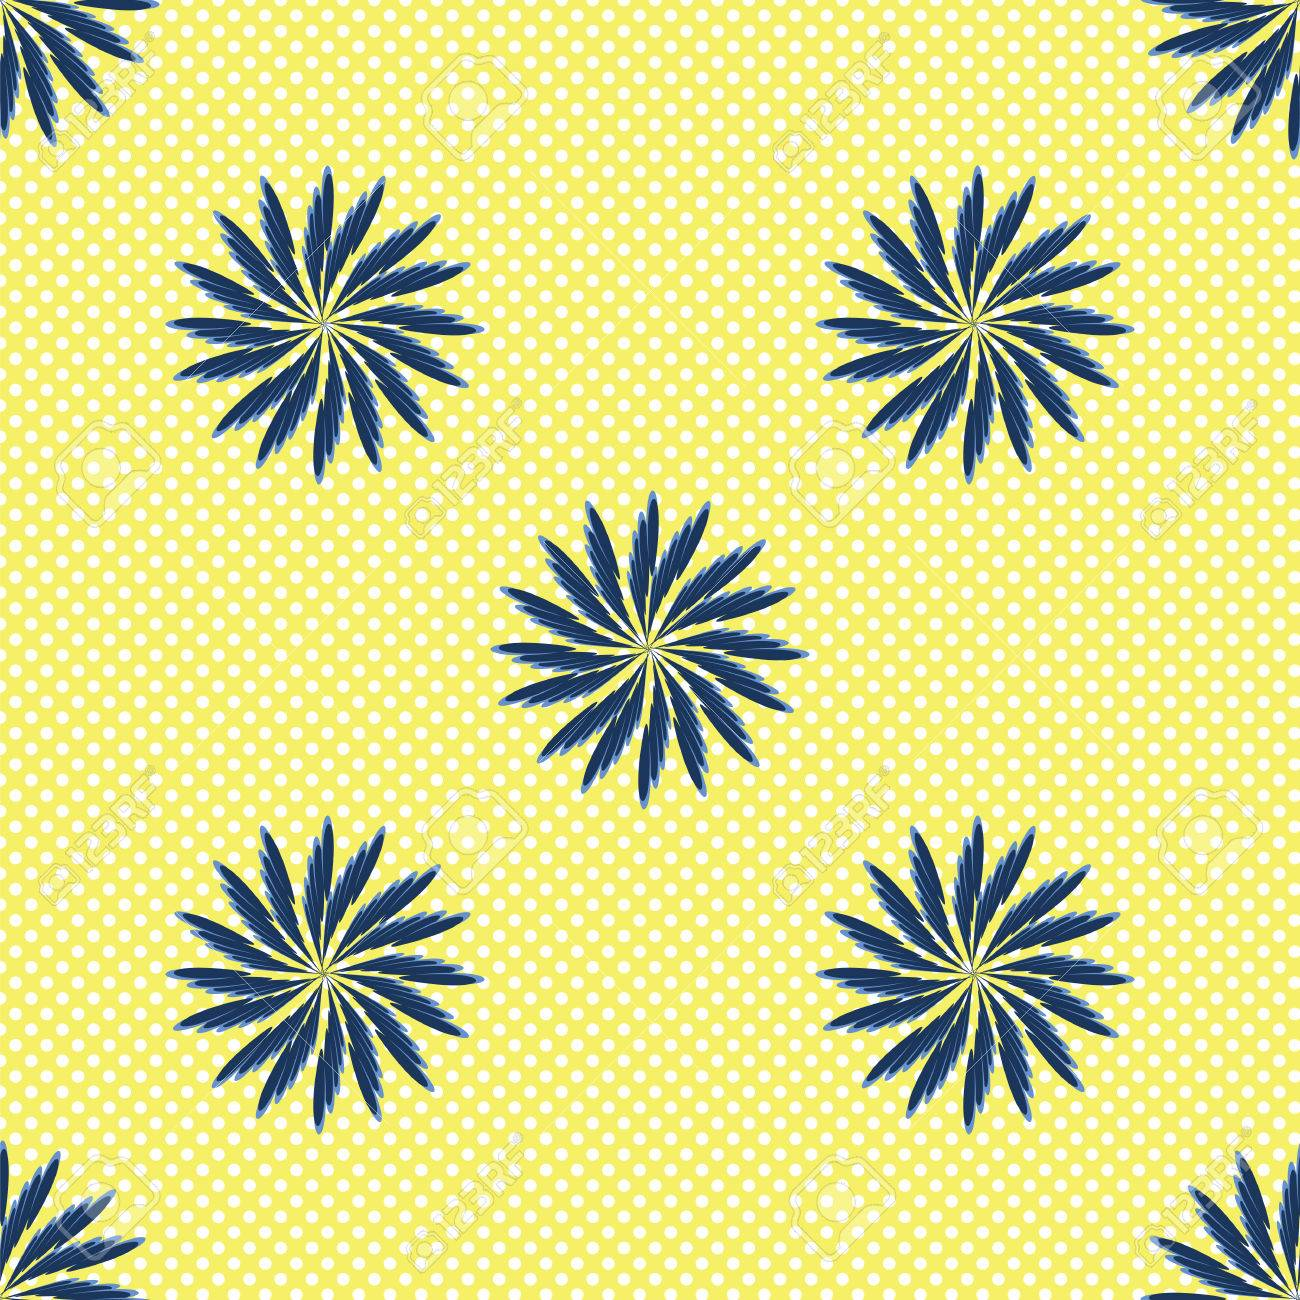 Art Nouveau Yellow Wild Flowers Blue Cornflowers Art Nouveau Abstract Creative Vector